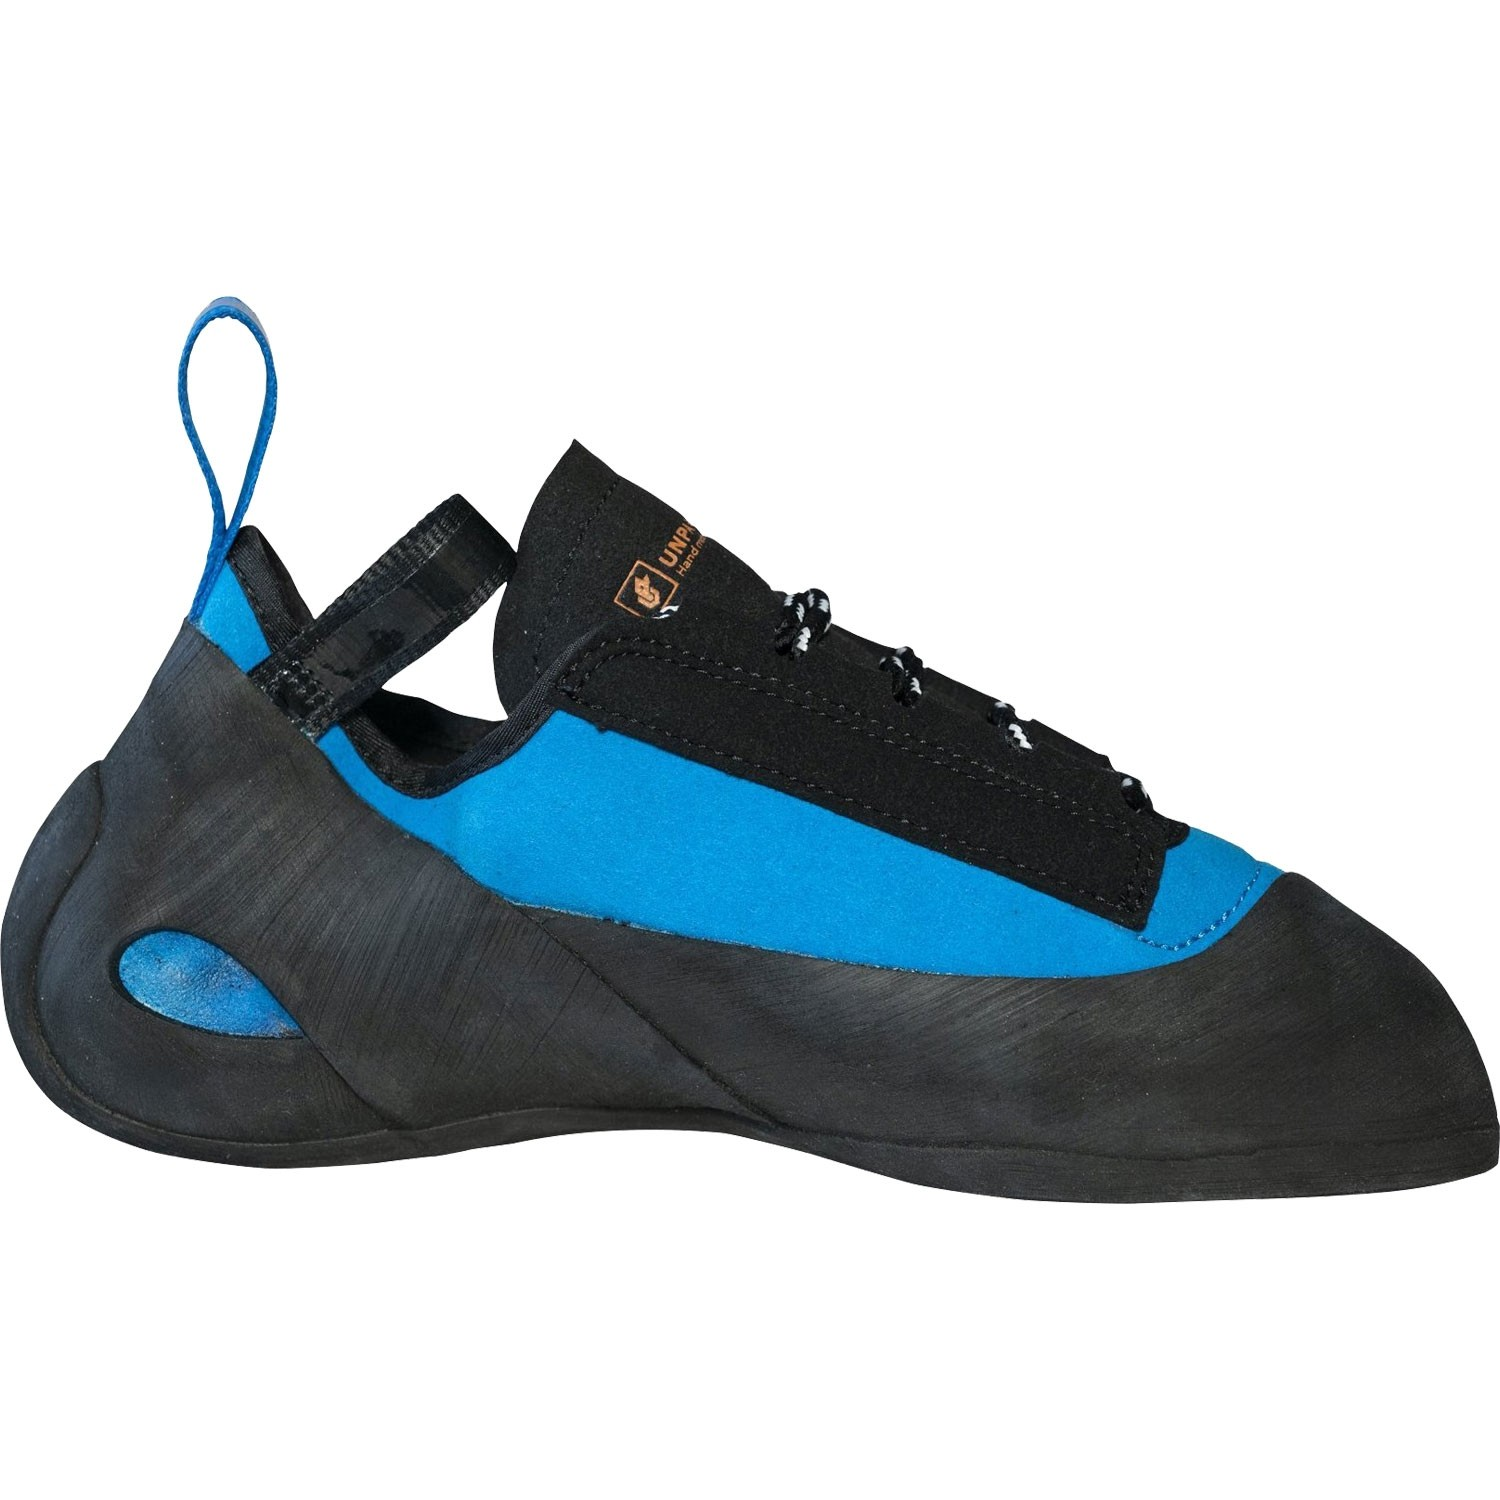 UnParallel UP Lace Climbing Shoe